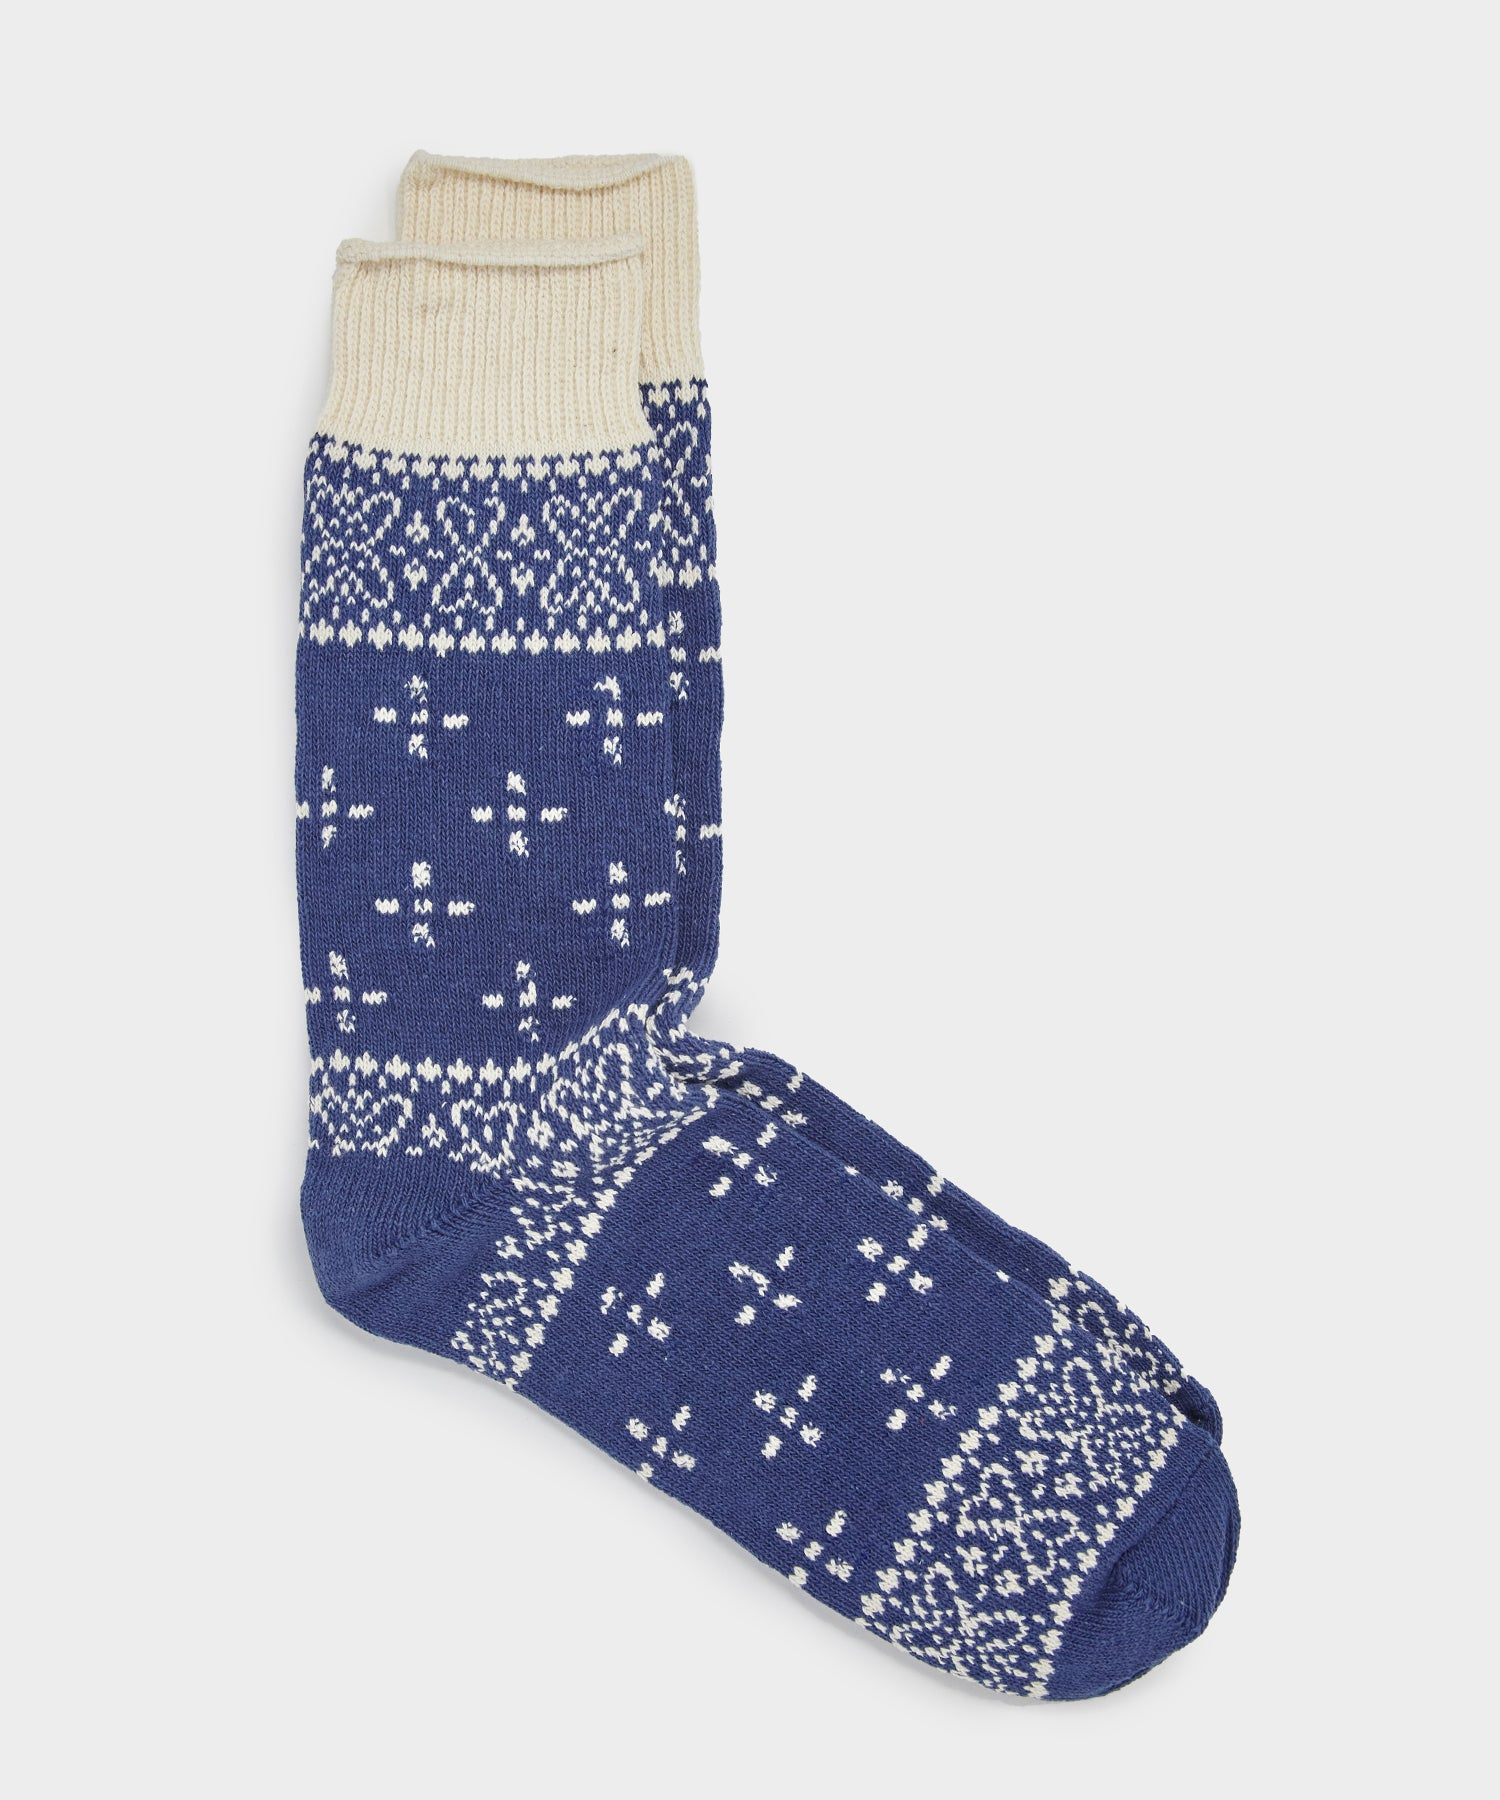 RoToTo Bandana Pattern Crew Socks in Blue